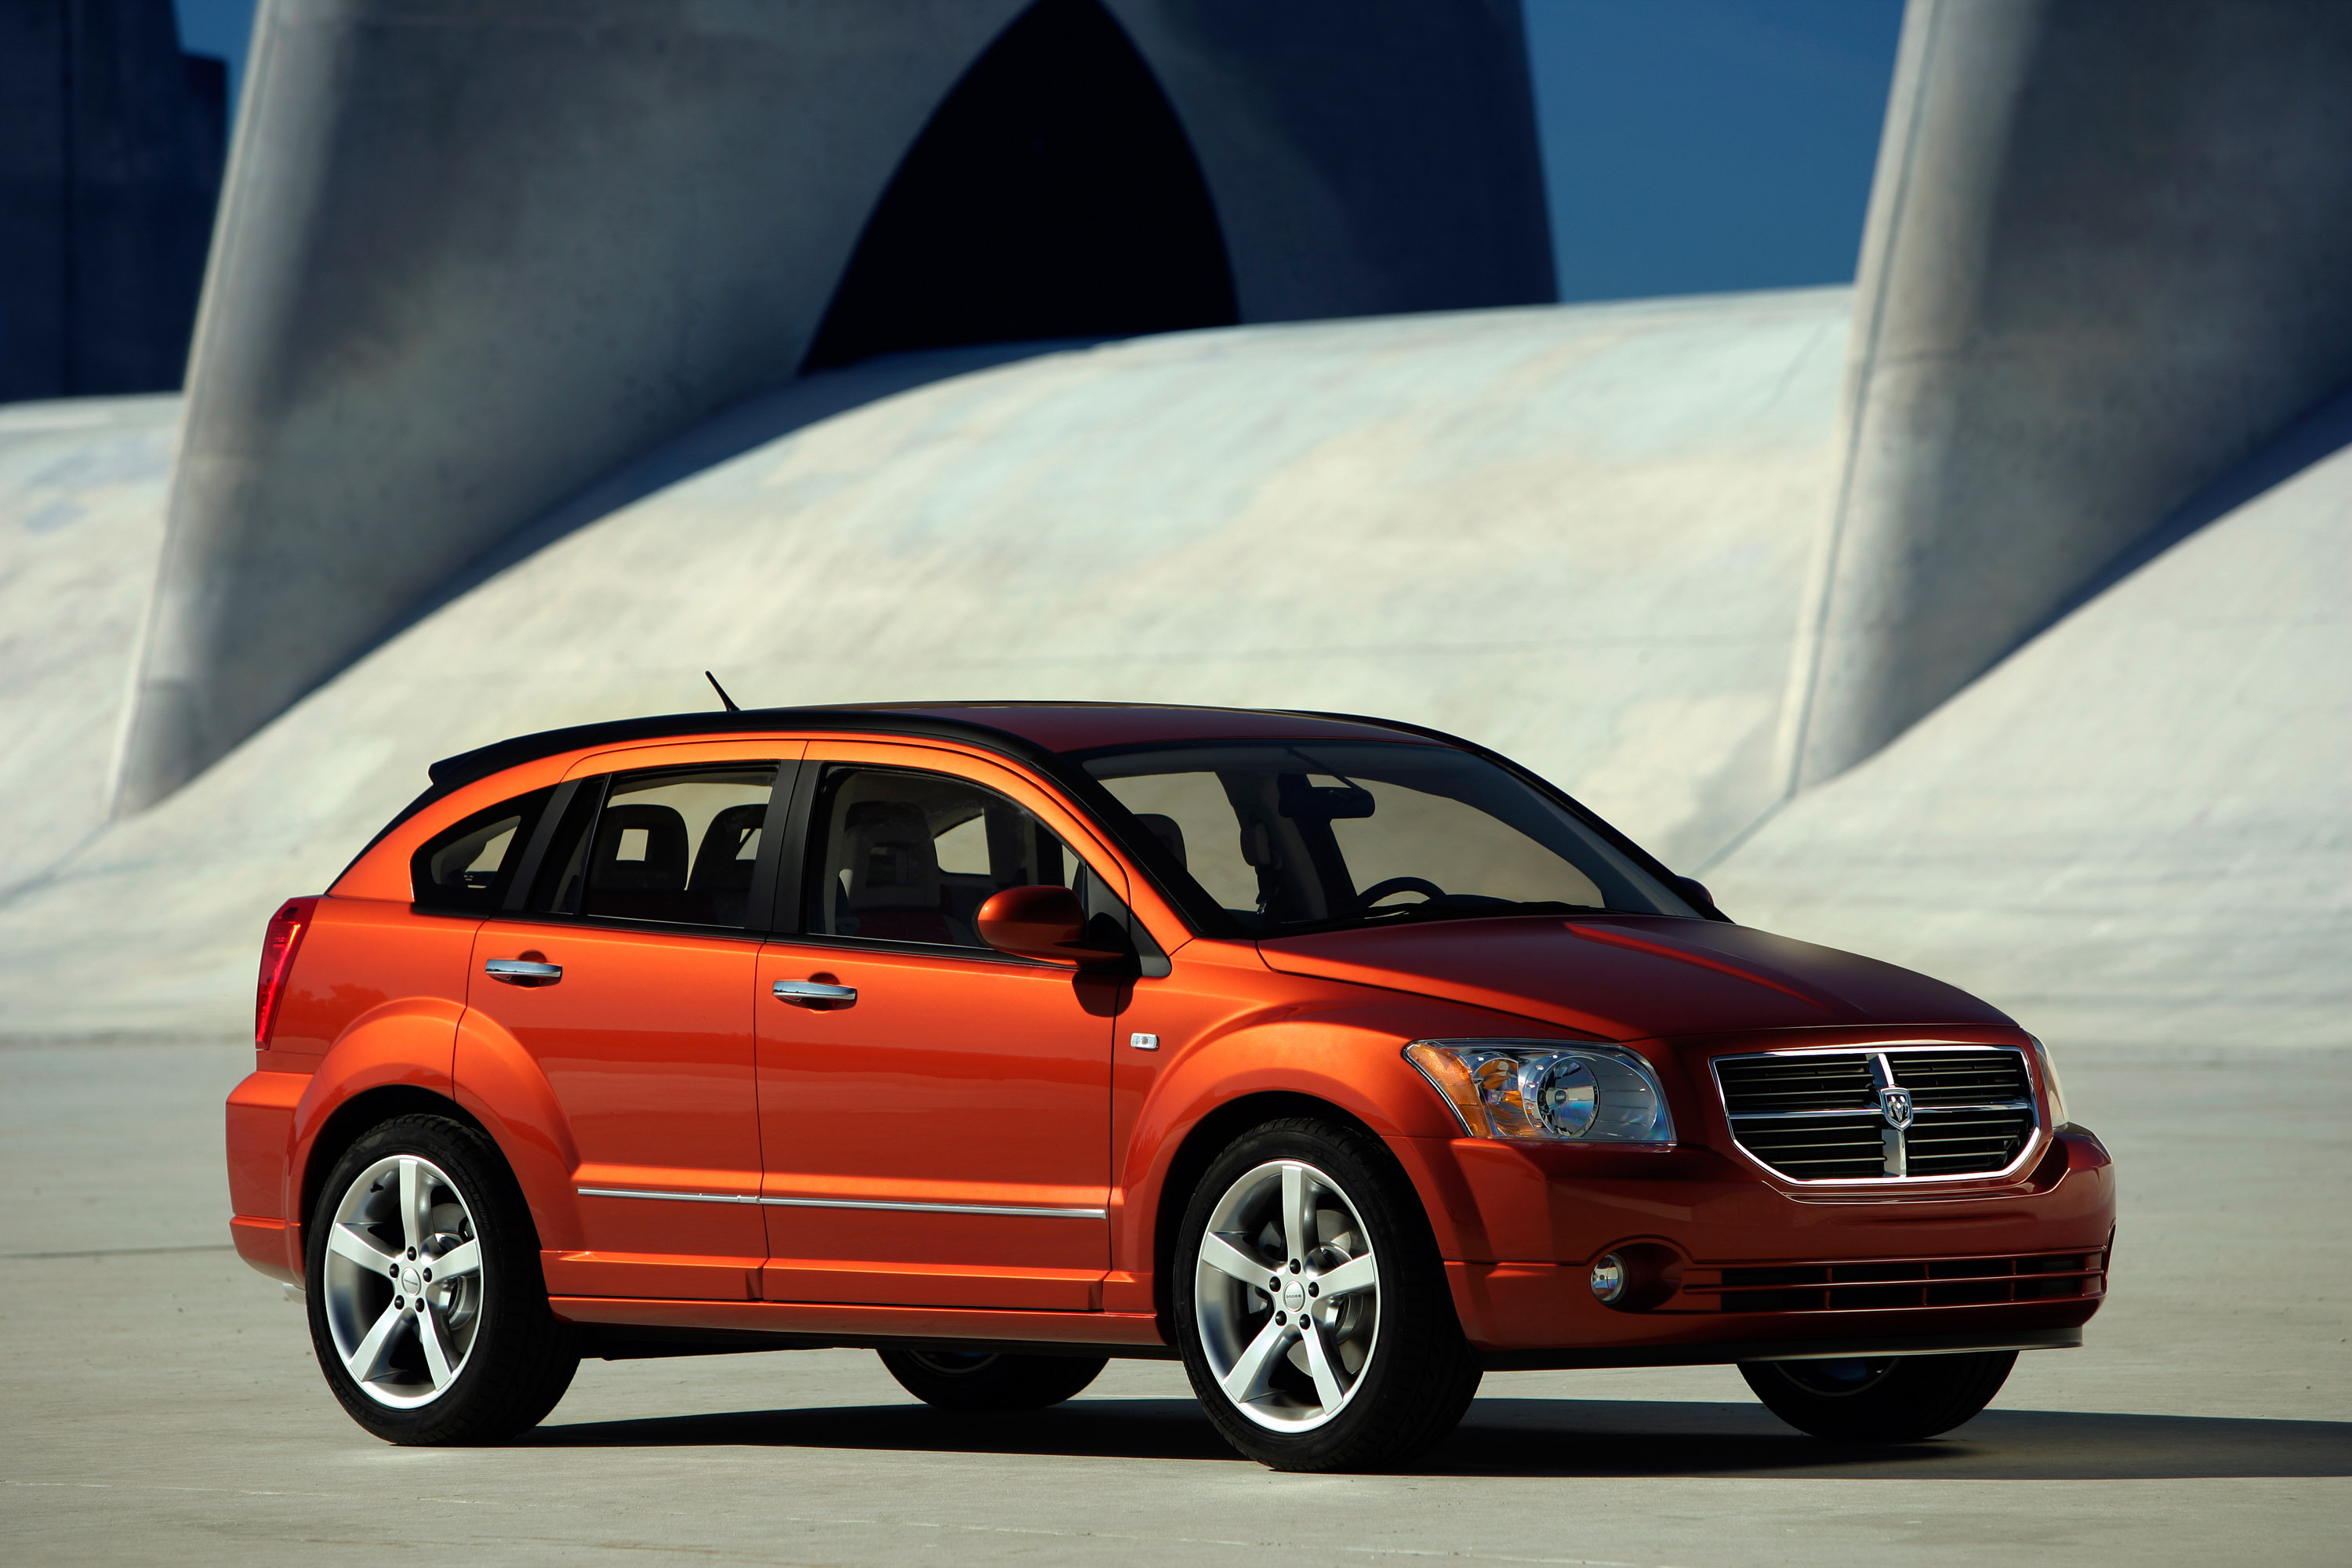 Dodge Caliber Headed Togeneva